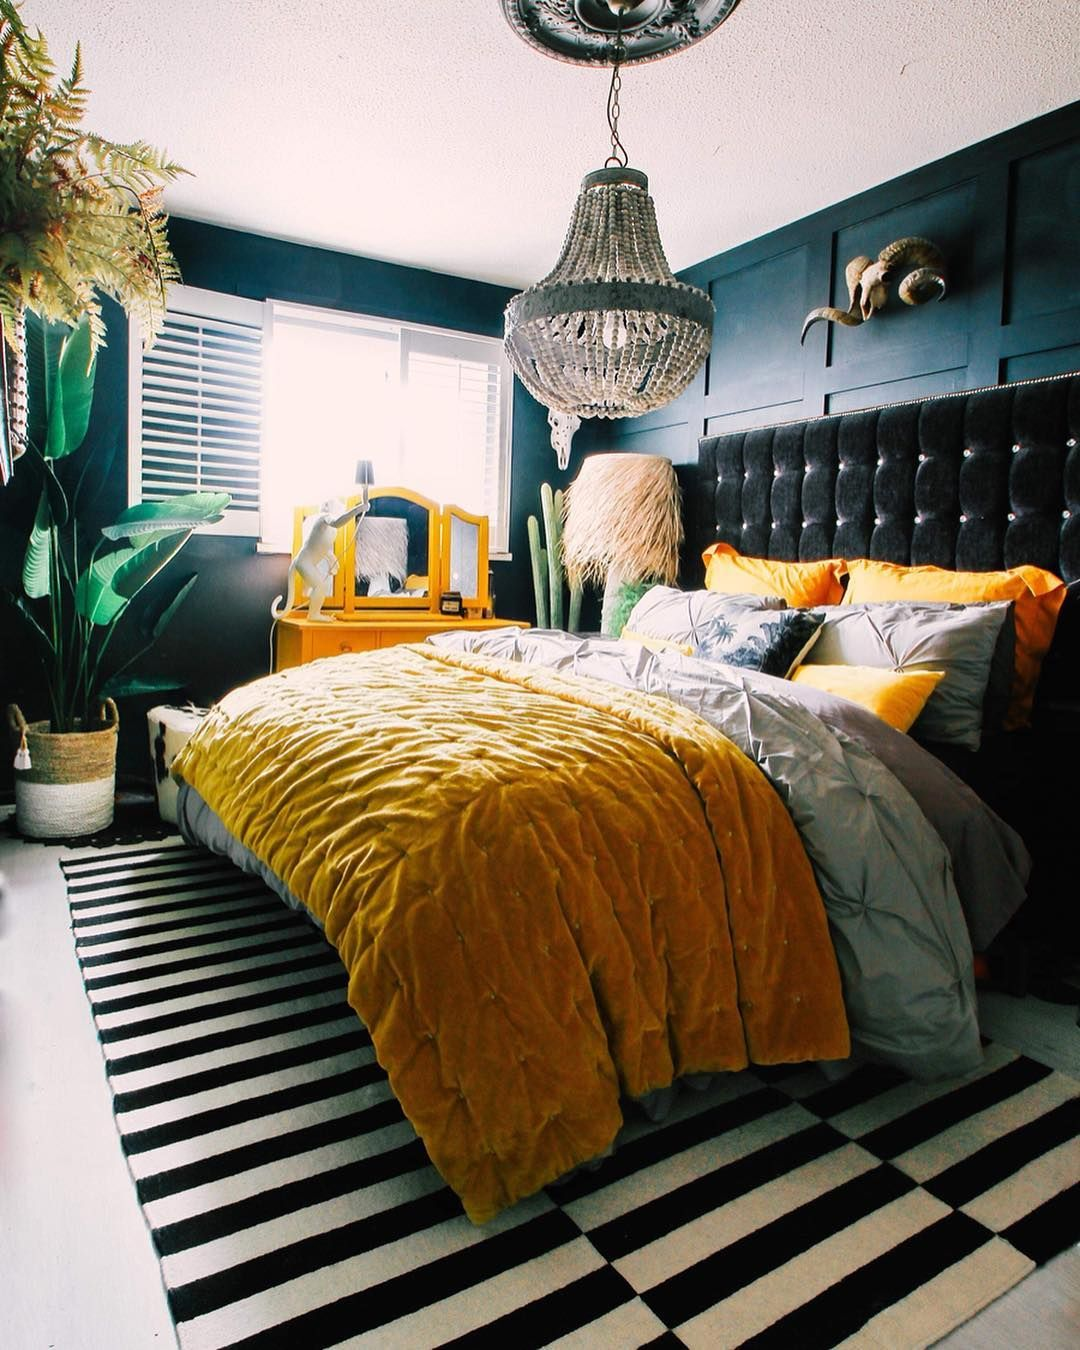 dark eclectic bedroom #bedroomgoals #bedroominspo